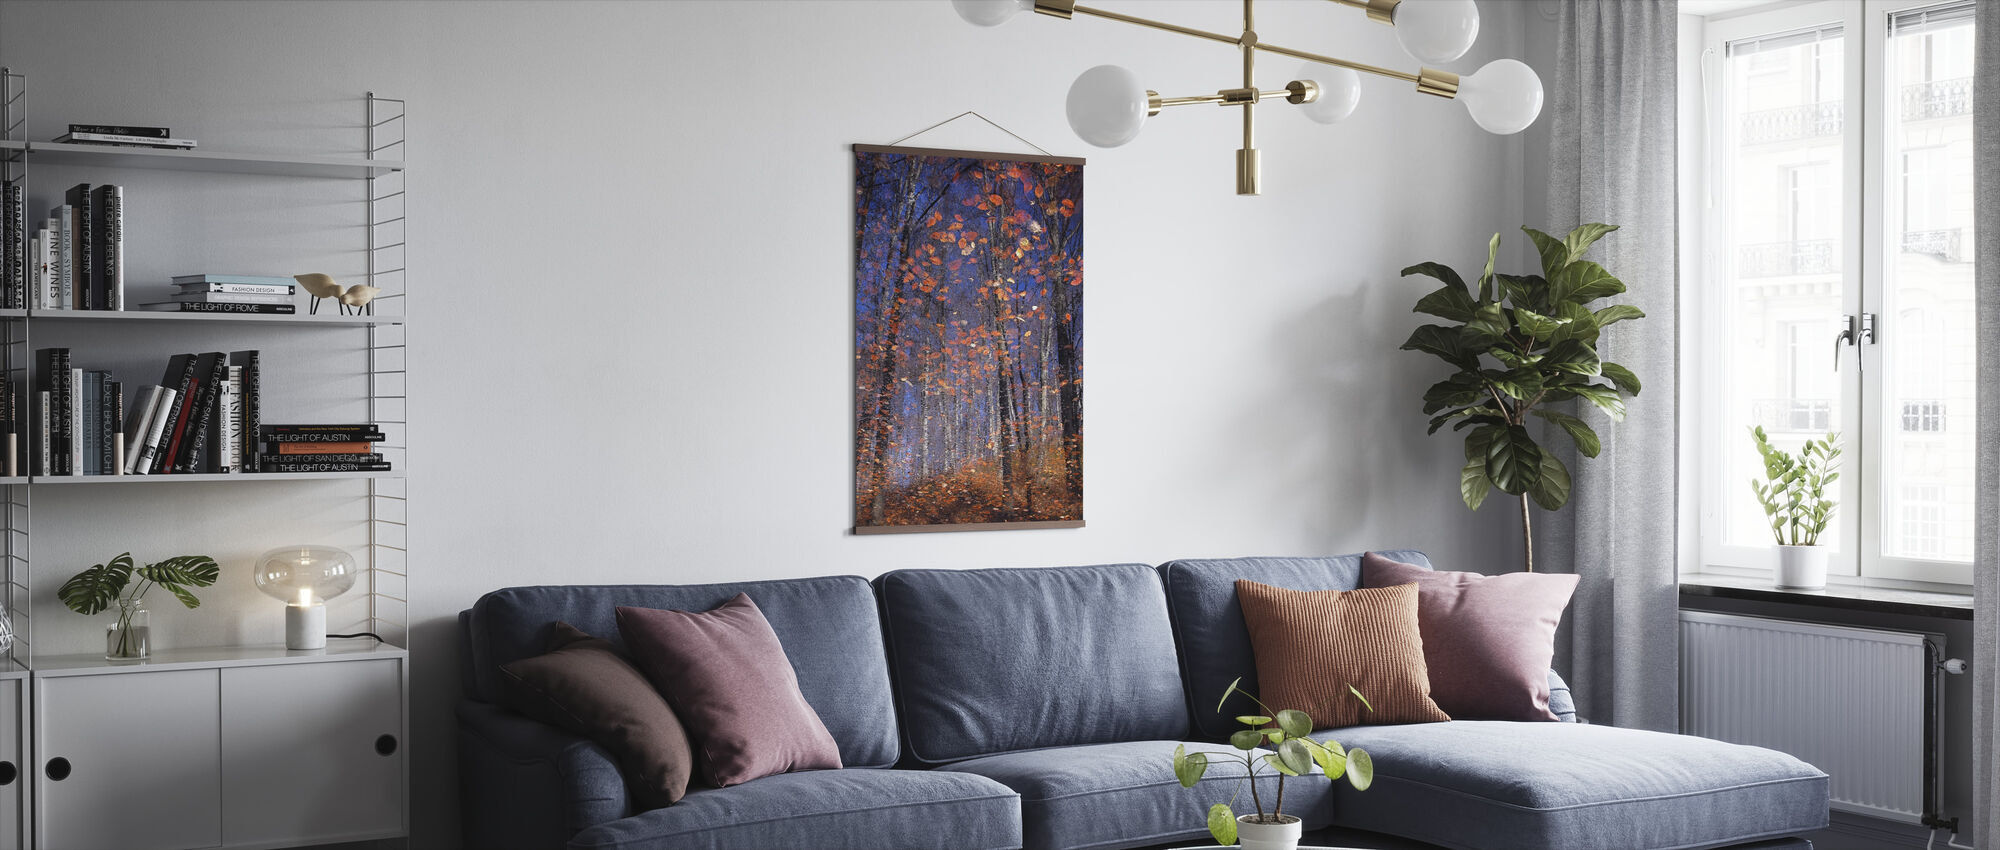 Golden Autumn Leaves - Poster - Living Room